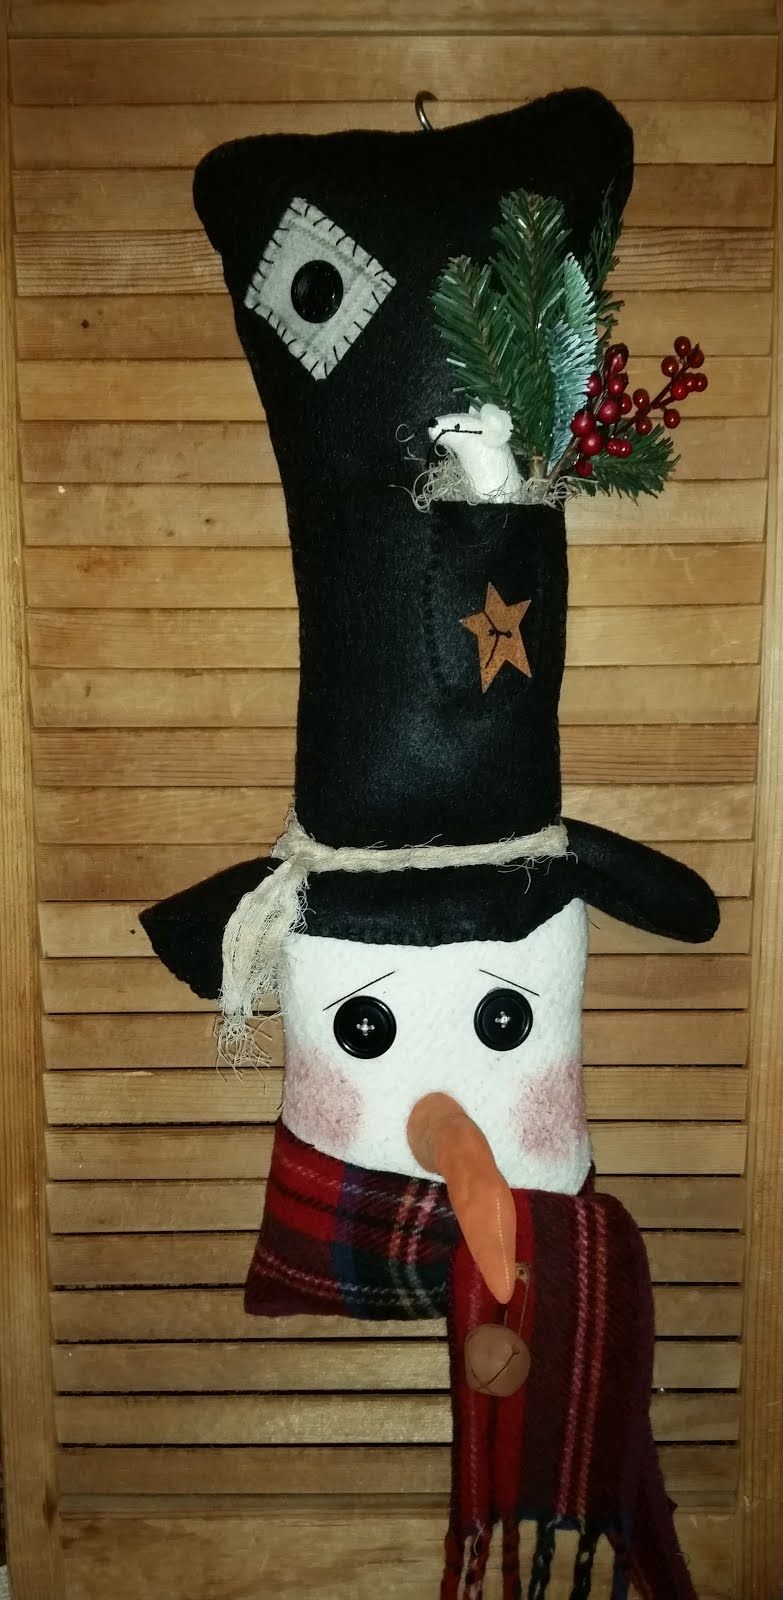 LARGE SNOWMAN HEAD DOOR GREETER